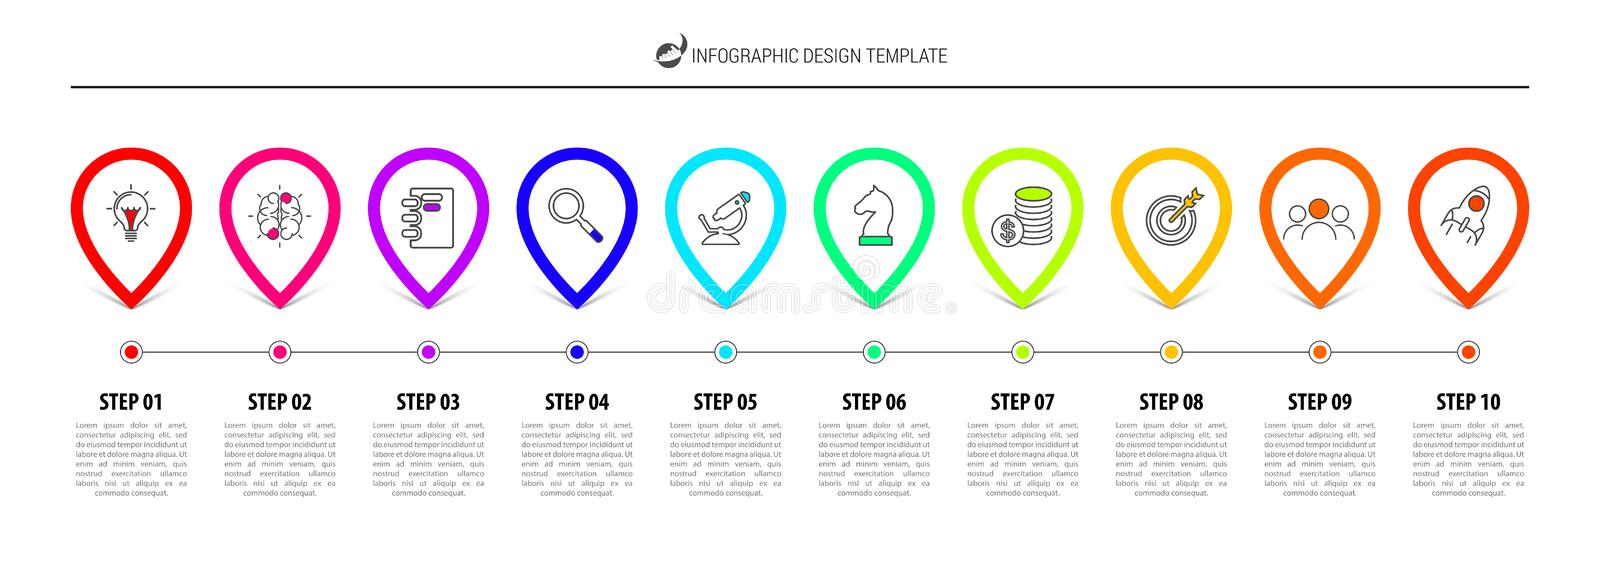 Infographic design template. Timeline concept with 10 steps. Can be used for workflow layout, diagram, banner, webdesign. Vector illustration stock illustration